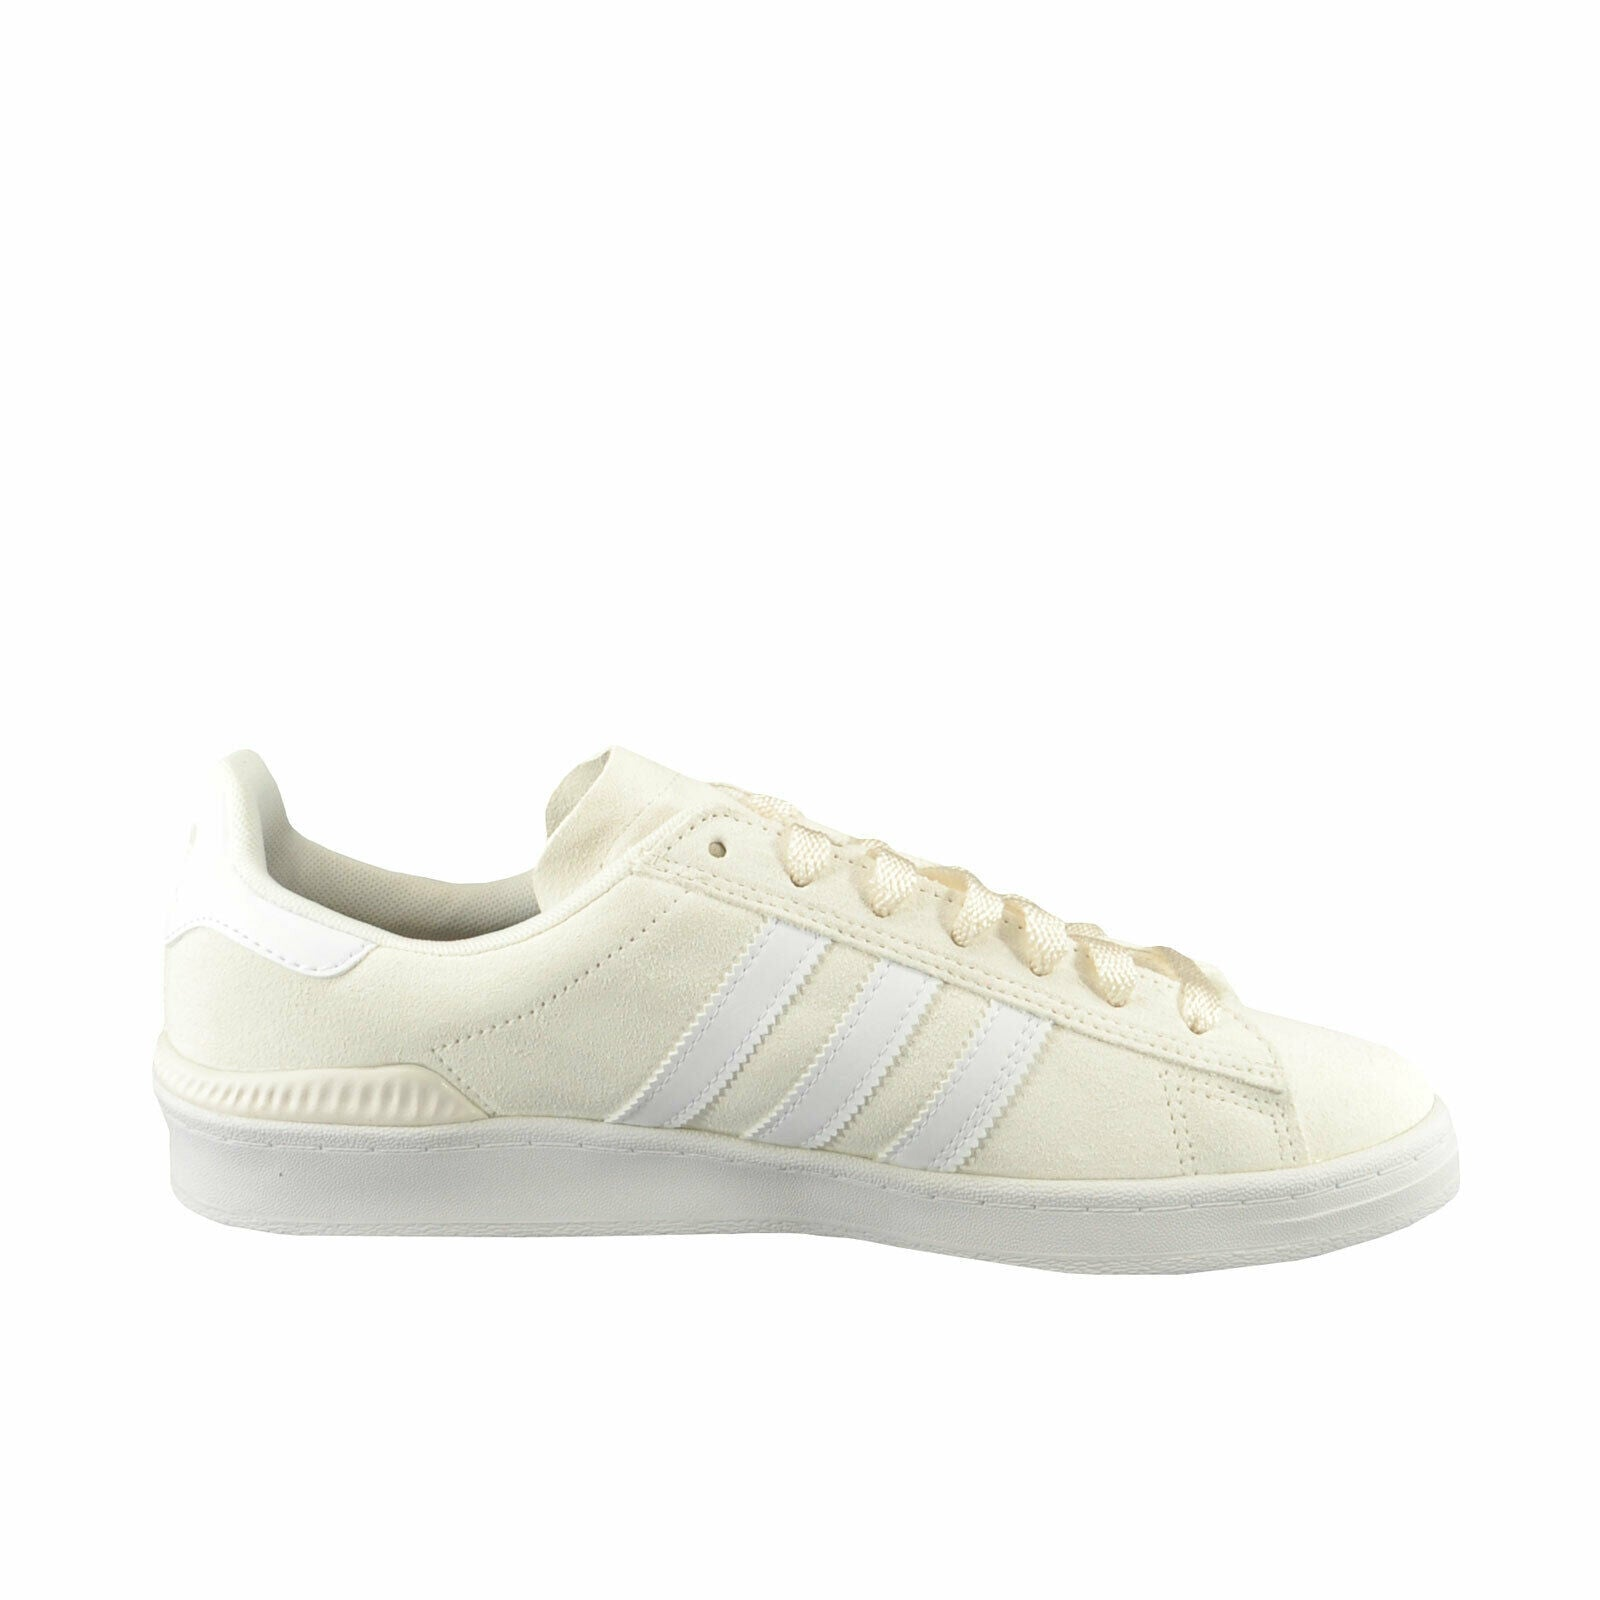 Adidas Campus Adv EG8577  (Colour/Footwear White/Gold Metallic)